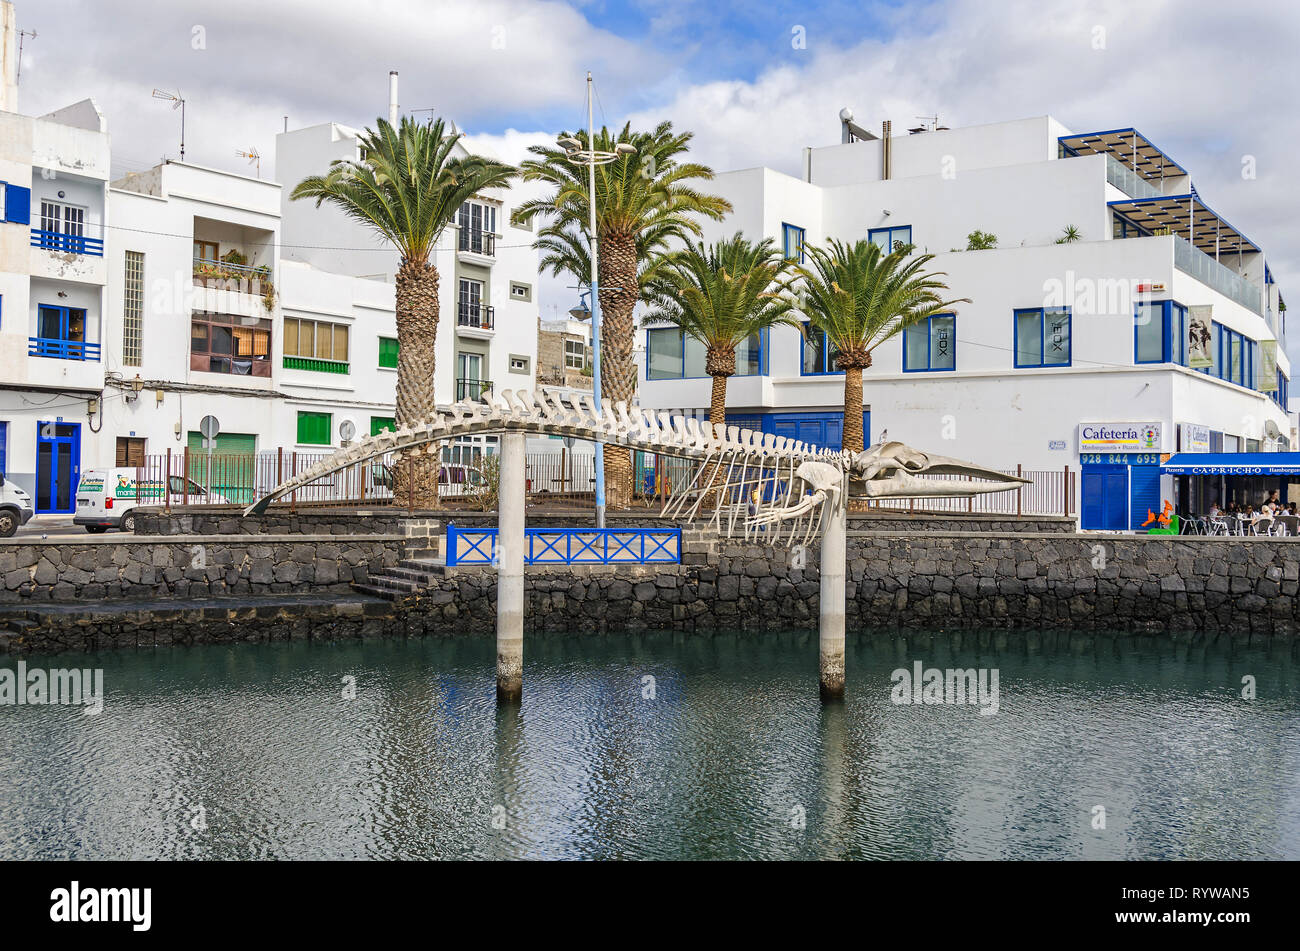 Arrecife, Spain -  November 5, 2018: The whale skeleton (Bryde's whale) common in Lanzarote waters displayed to generate environmental awareness areas - Stock Image